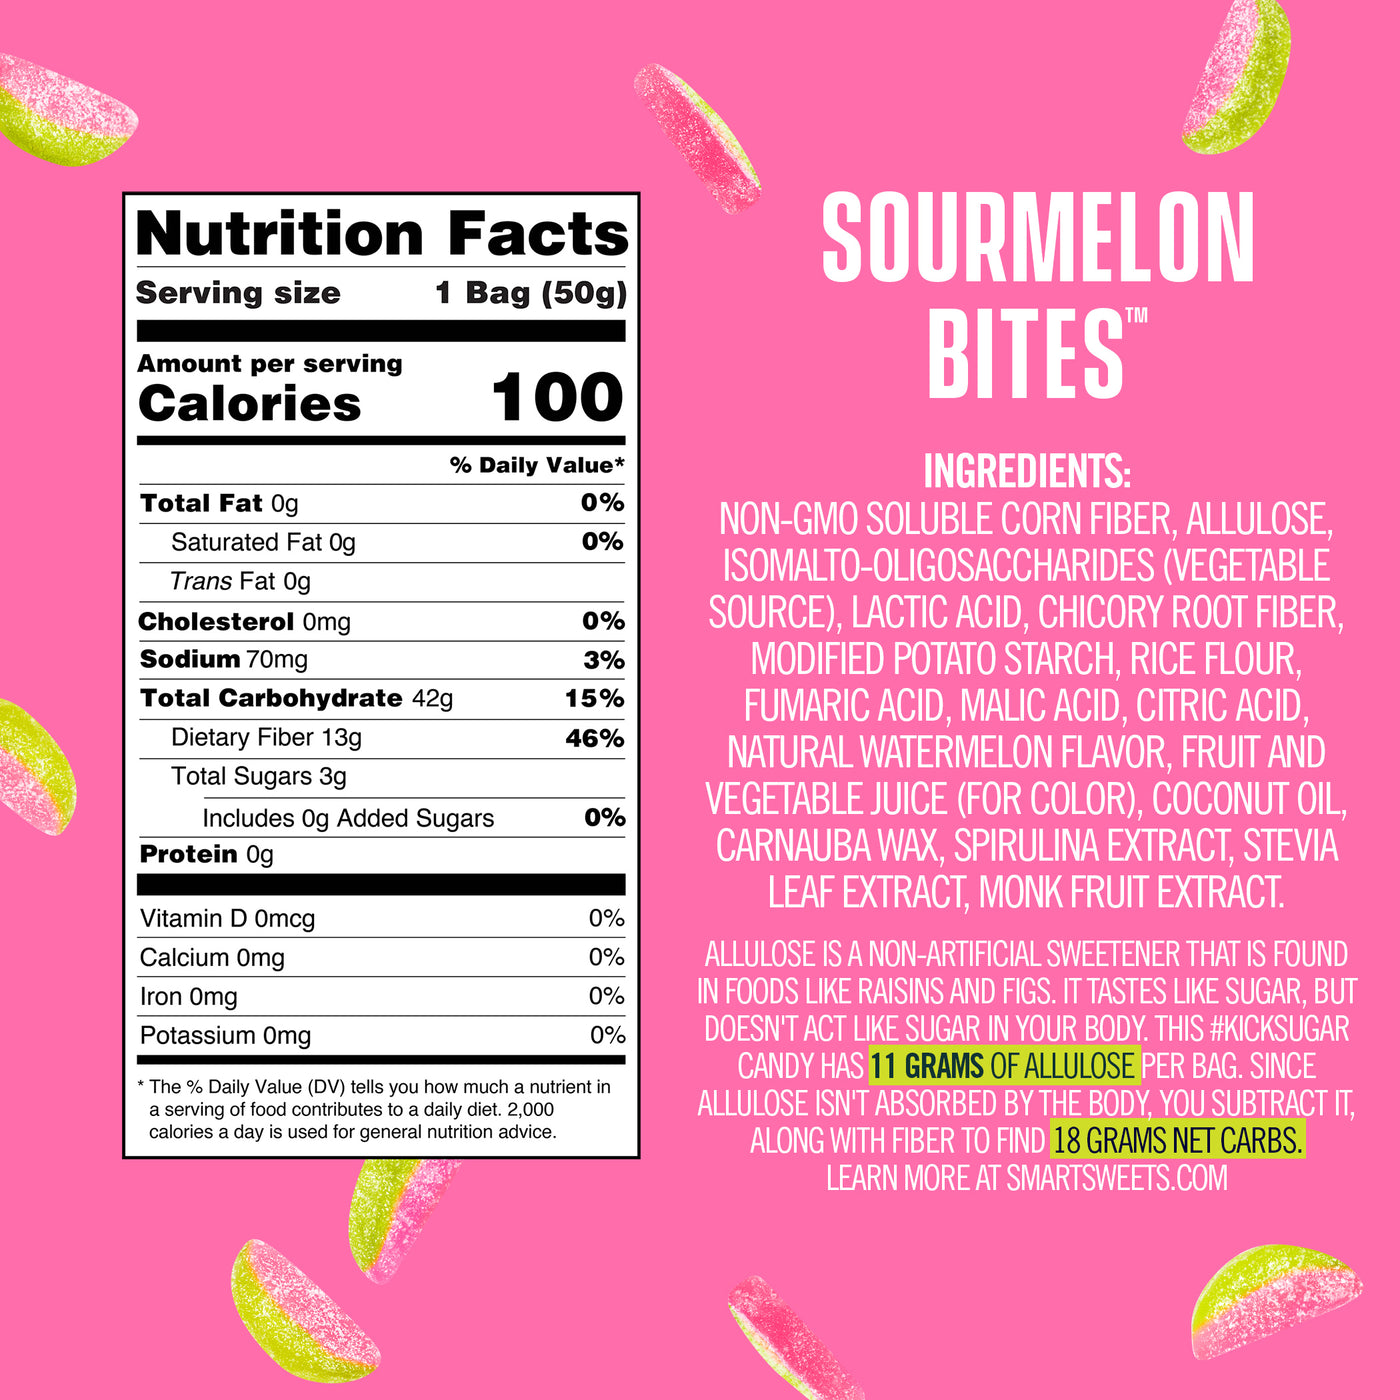 Sourmelon Bites™ Kit